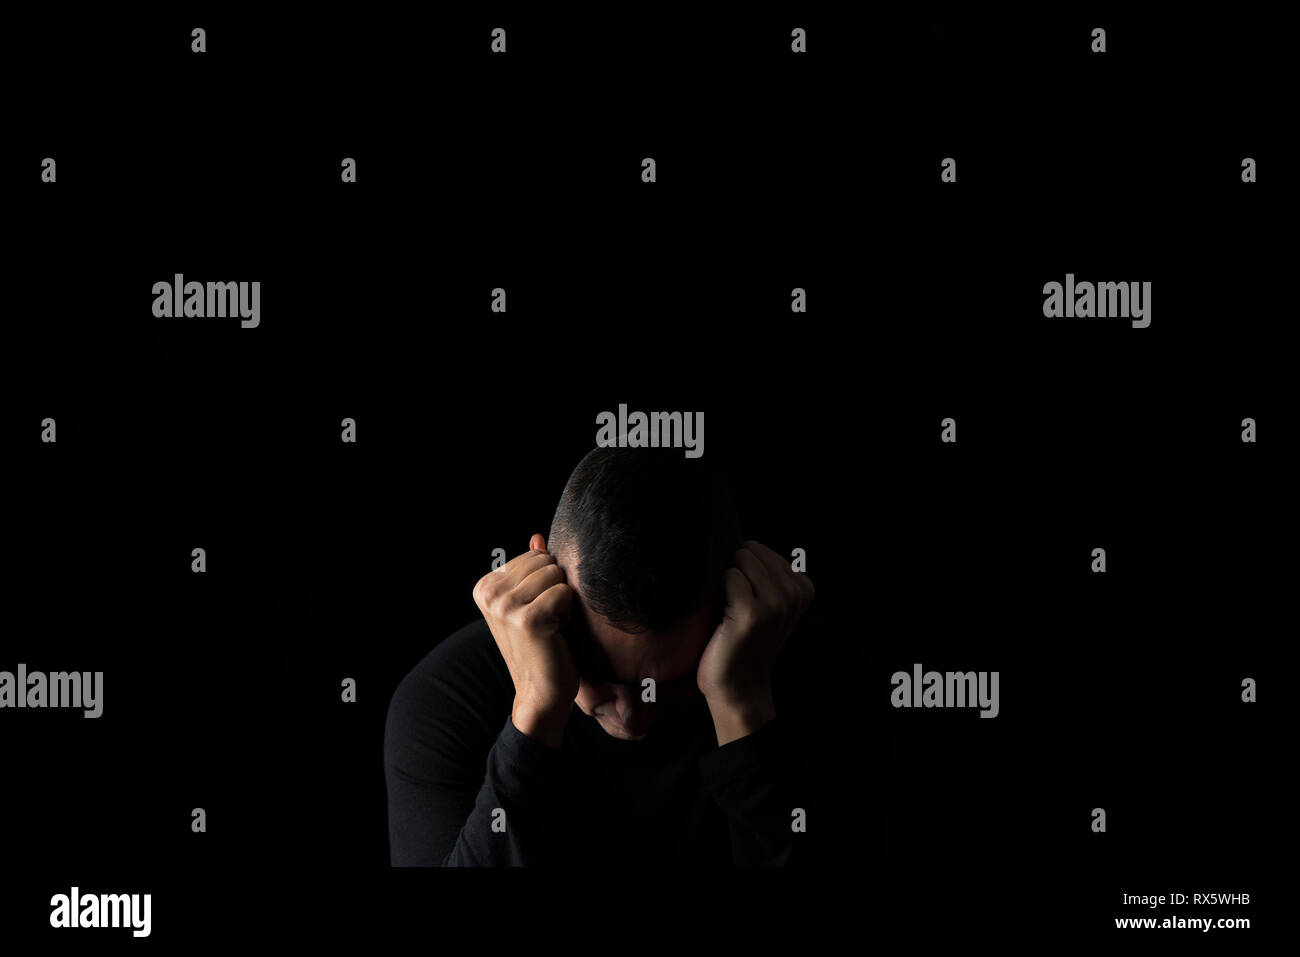 closeup of a desperate young caucasian man with his hands in his head, against a black background, with some blank copy space around him - Stock Image